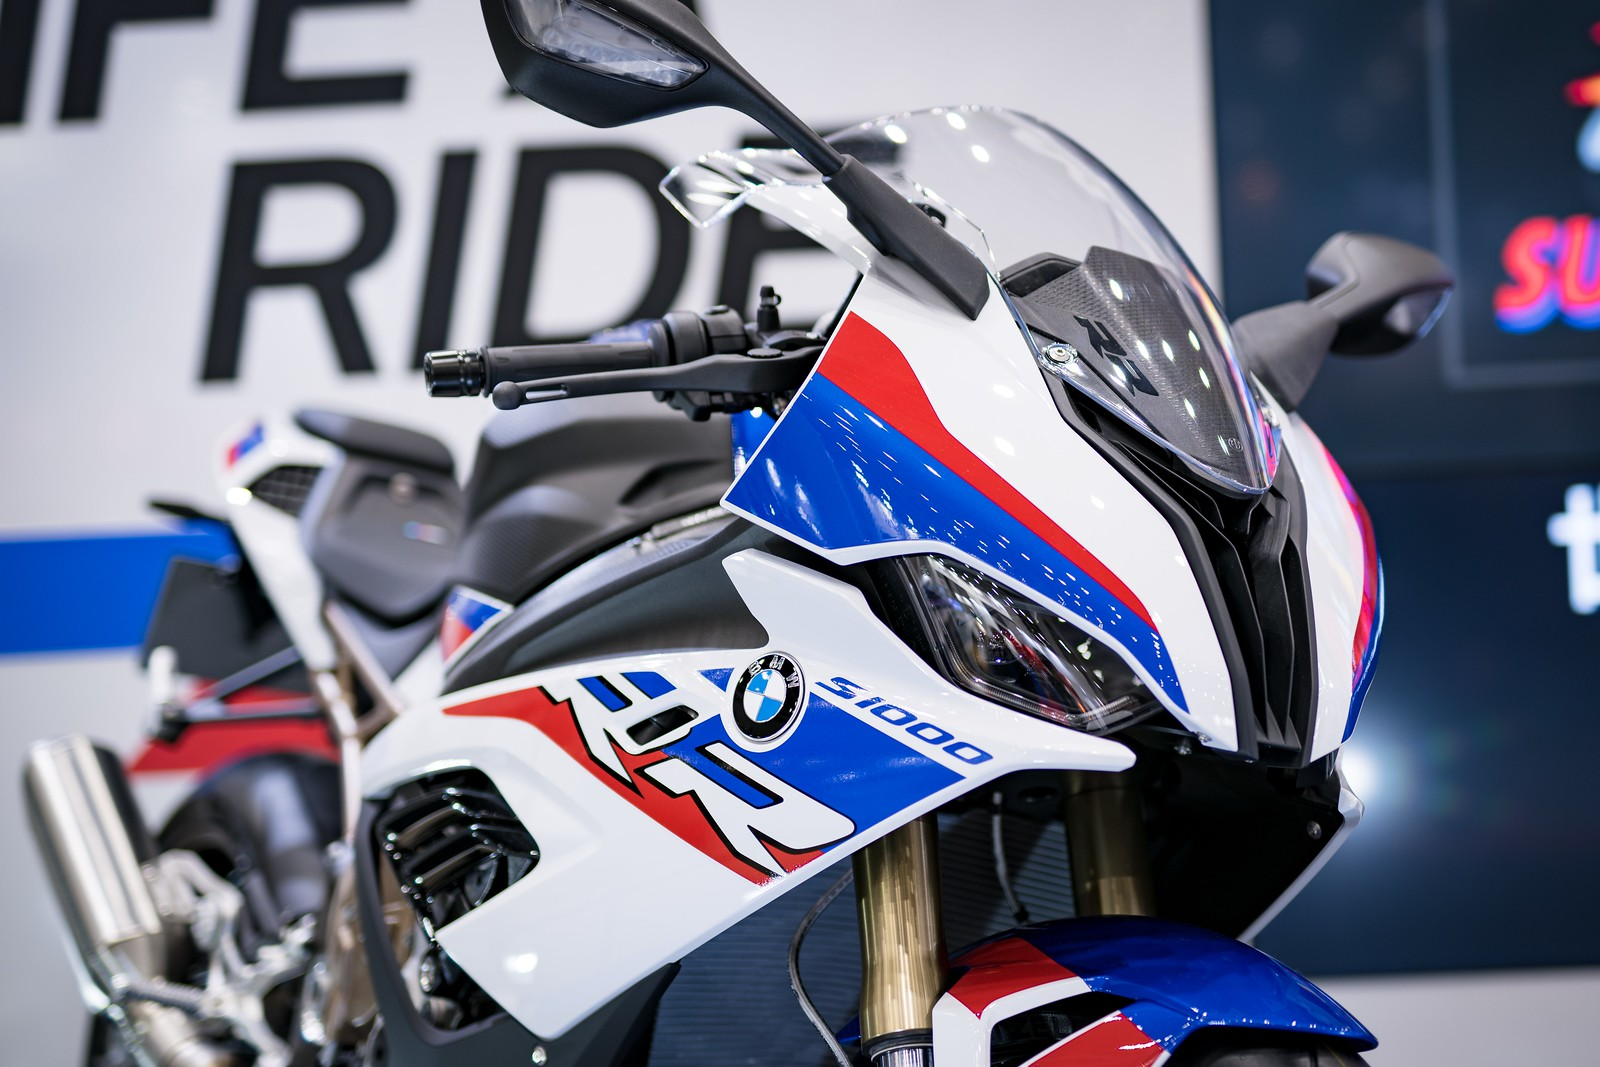 BMW S1000RR 2019 - Tokyo MotorCycle Show